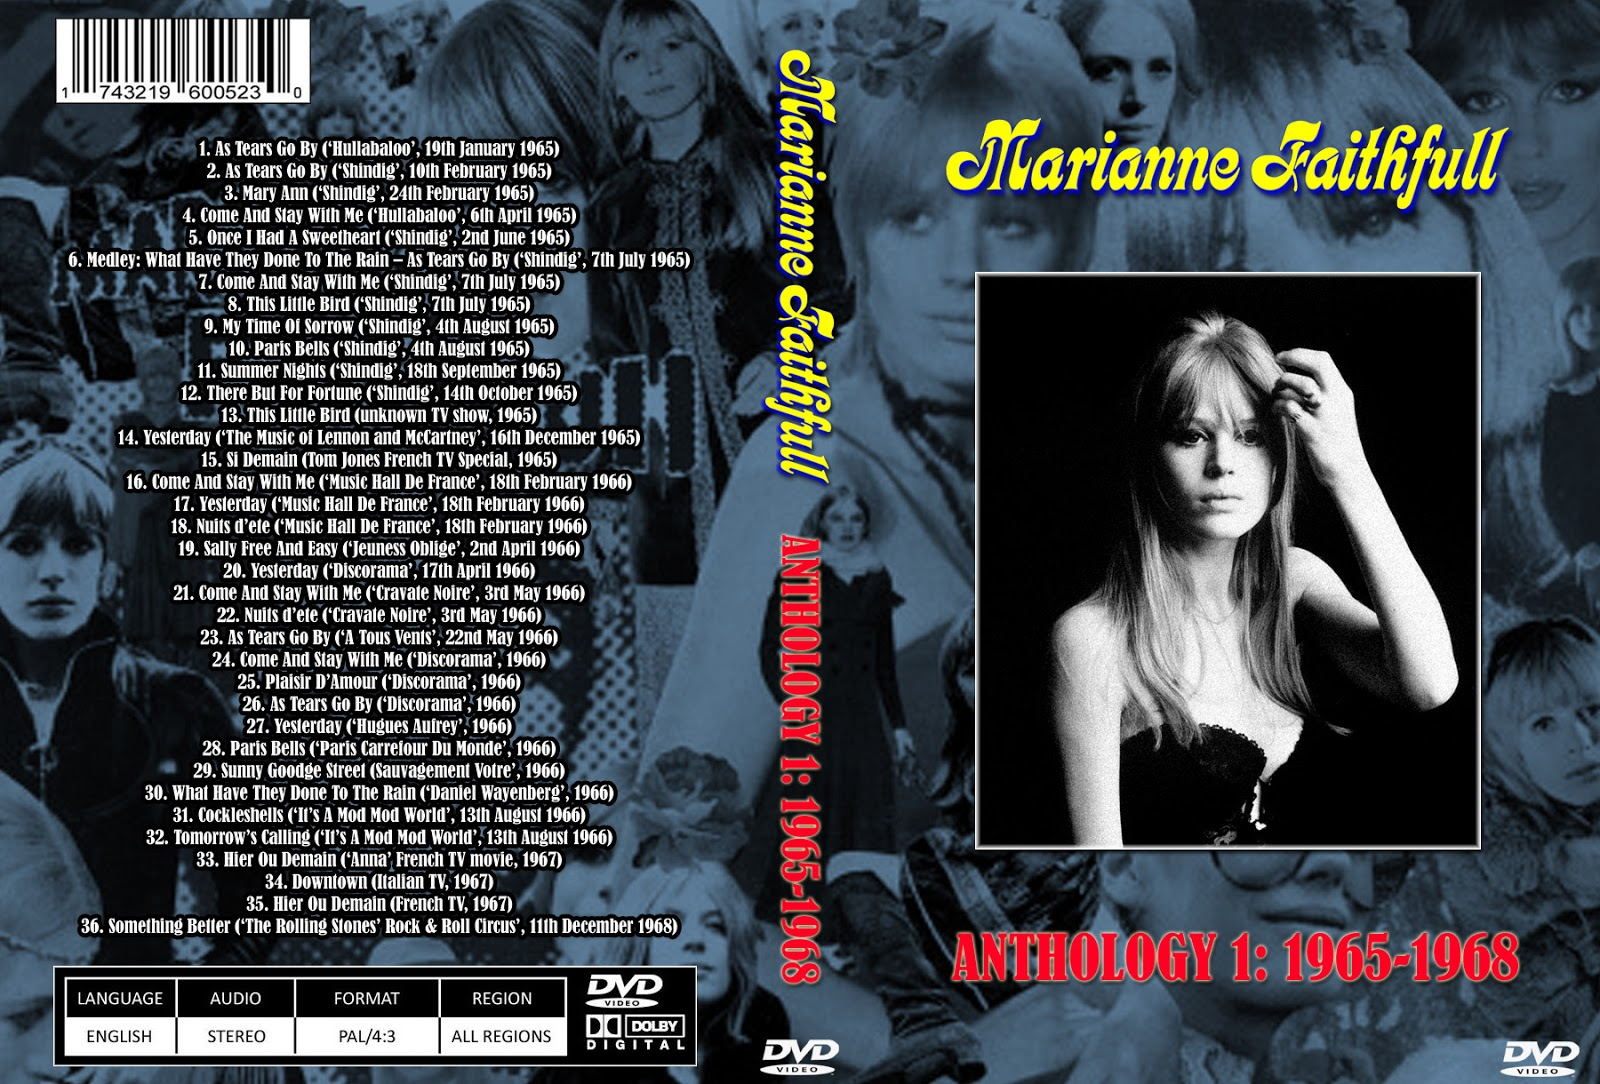 Peter cs music tv video archives marianne faithfull on dvd marianne faithfull on dvd altavistaventures Choice Image